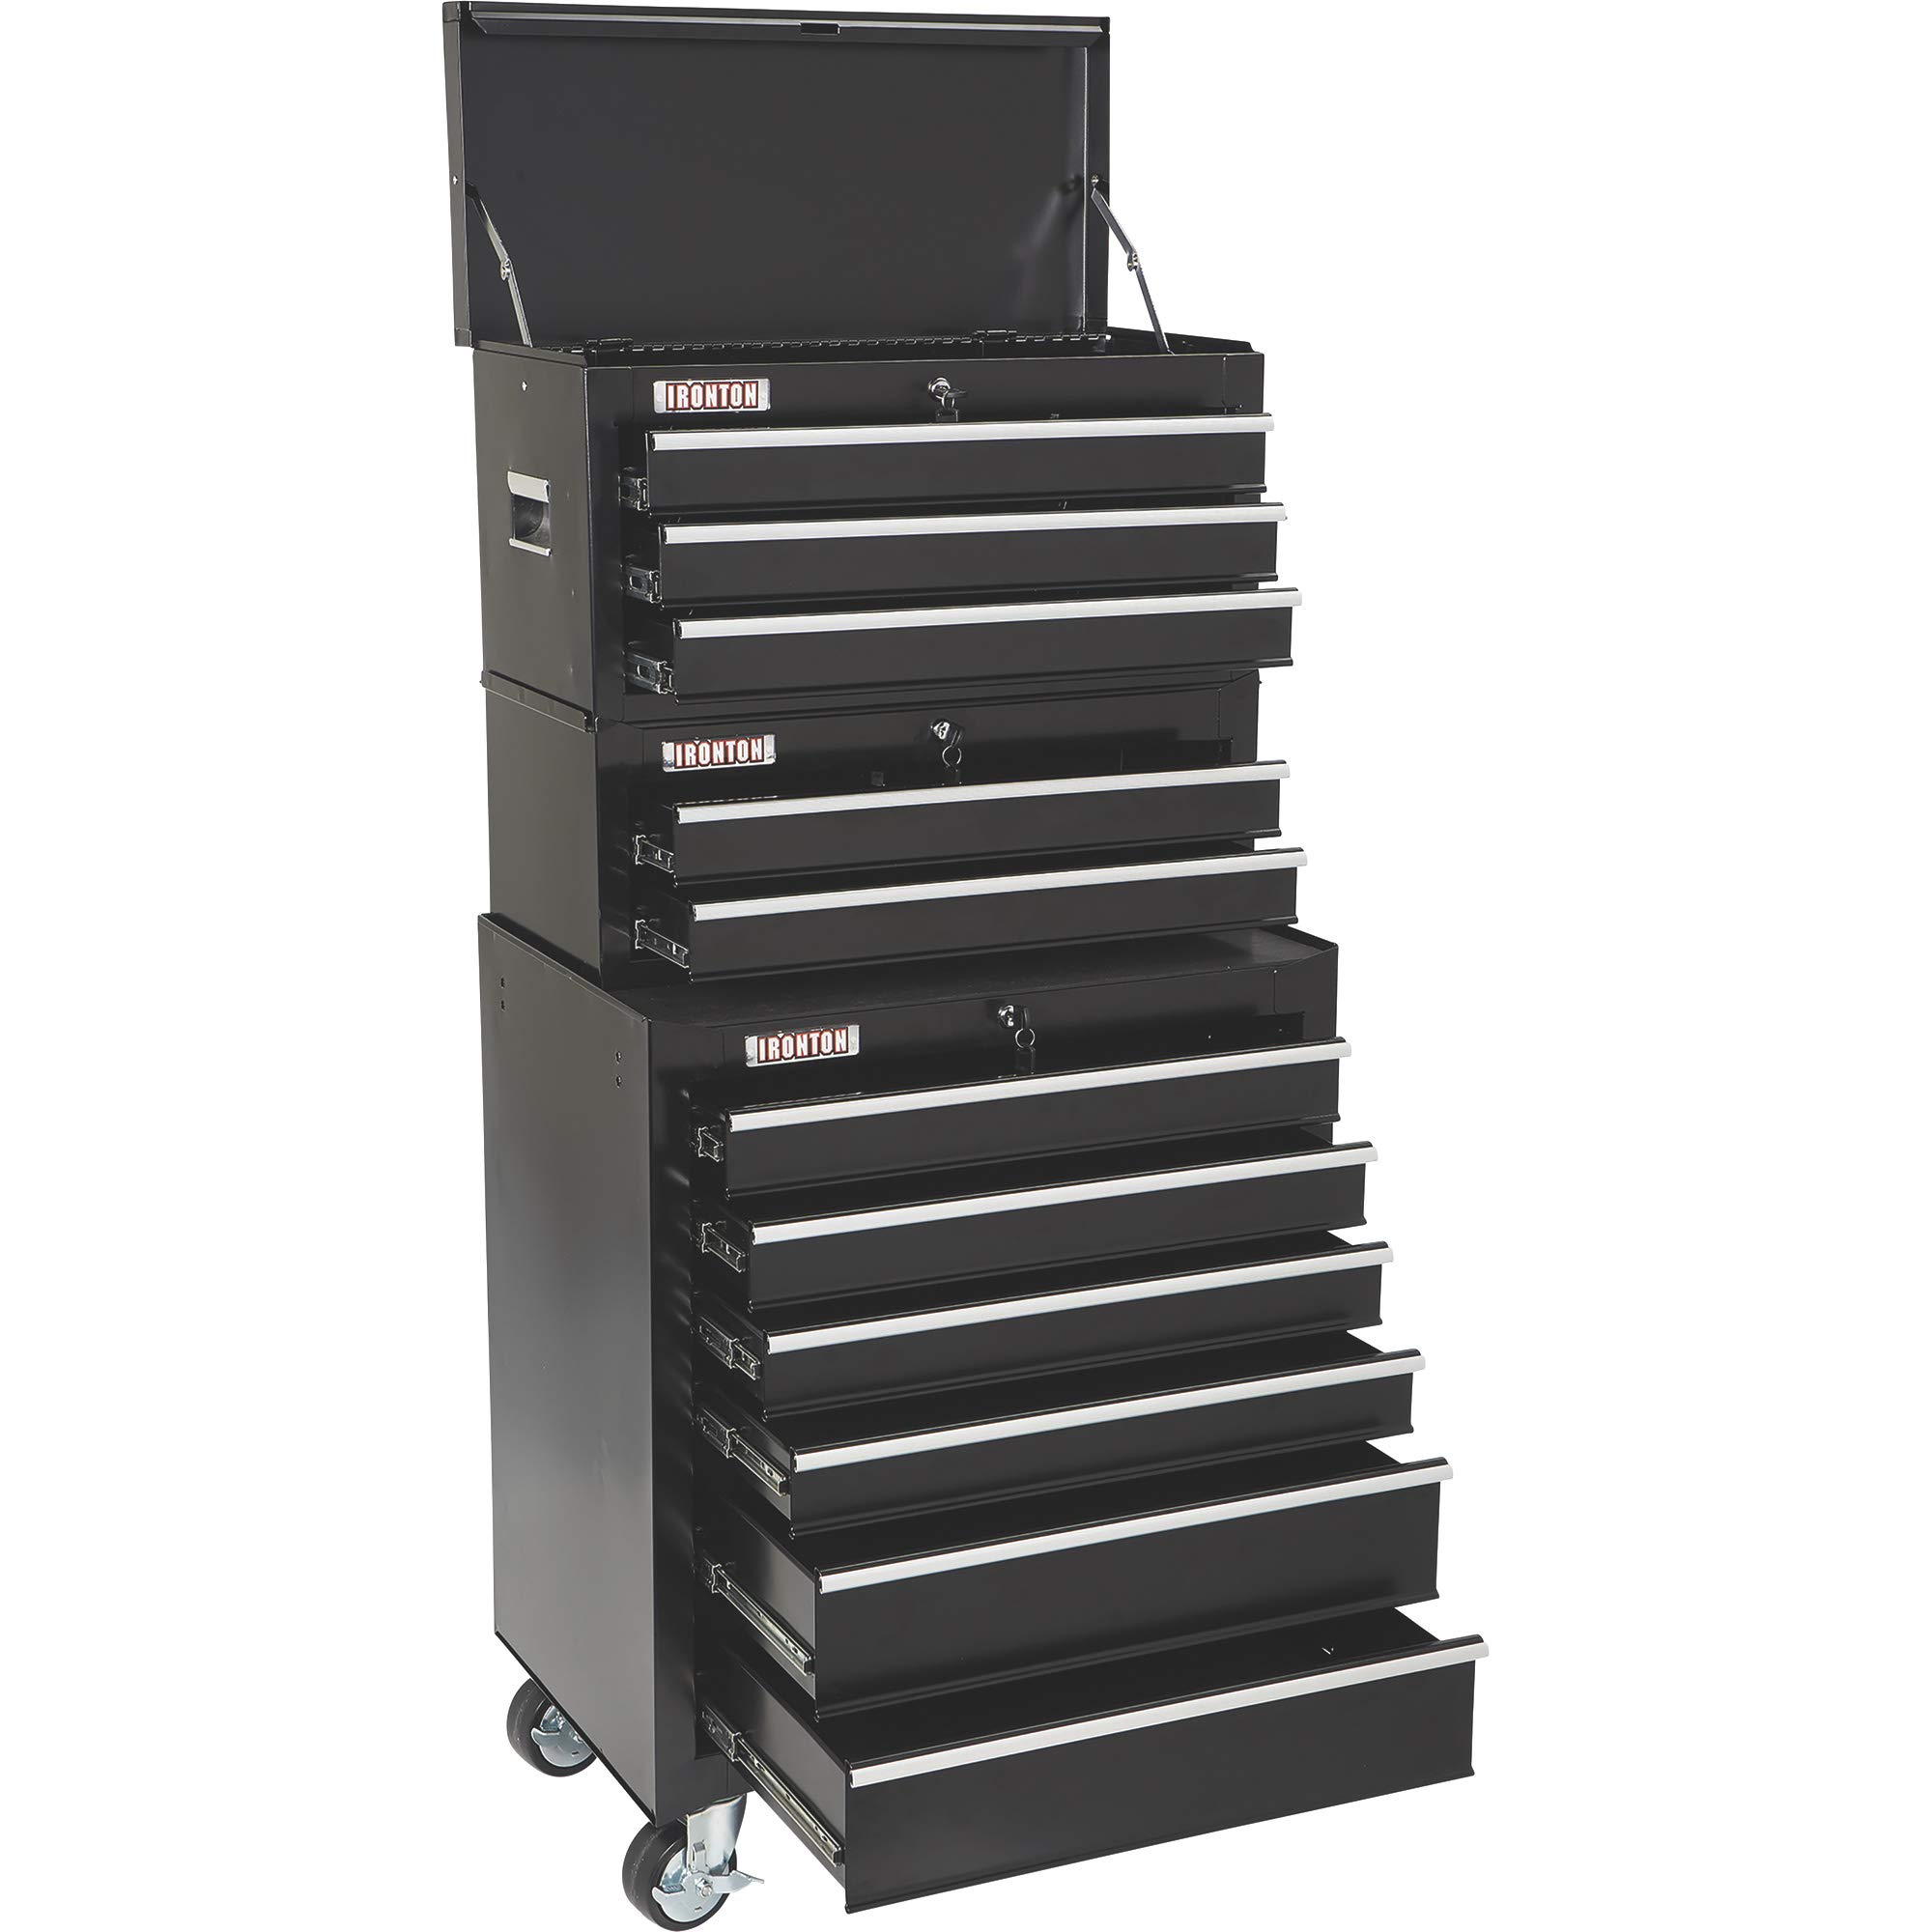 Ironton 26in. 6-Drawer Rolling Tool Chest - 26.75in.W x 18in.D x 33.3in.H by Ironton (Image #9)